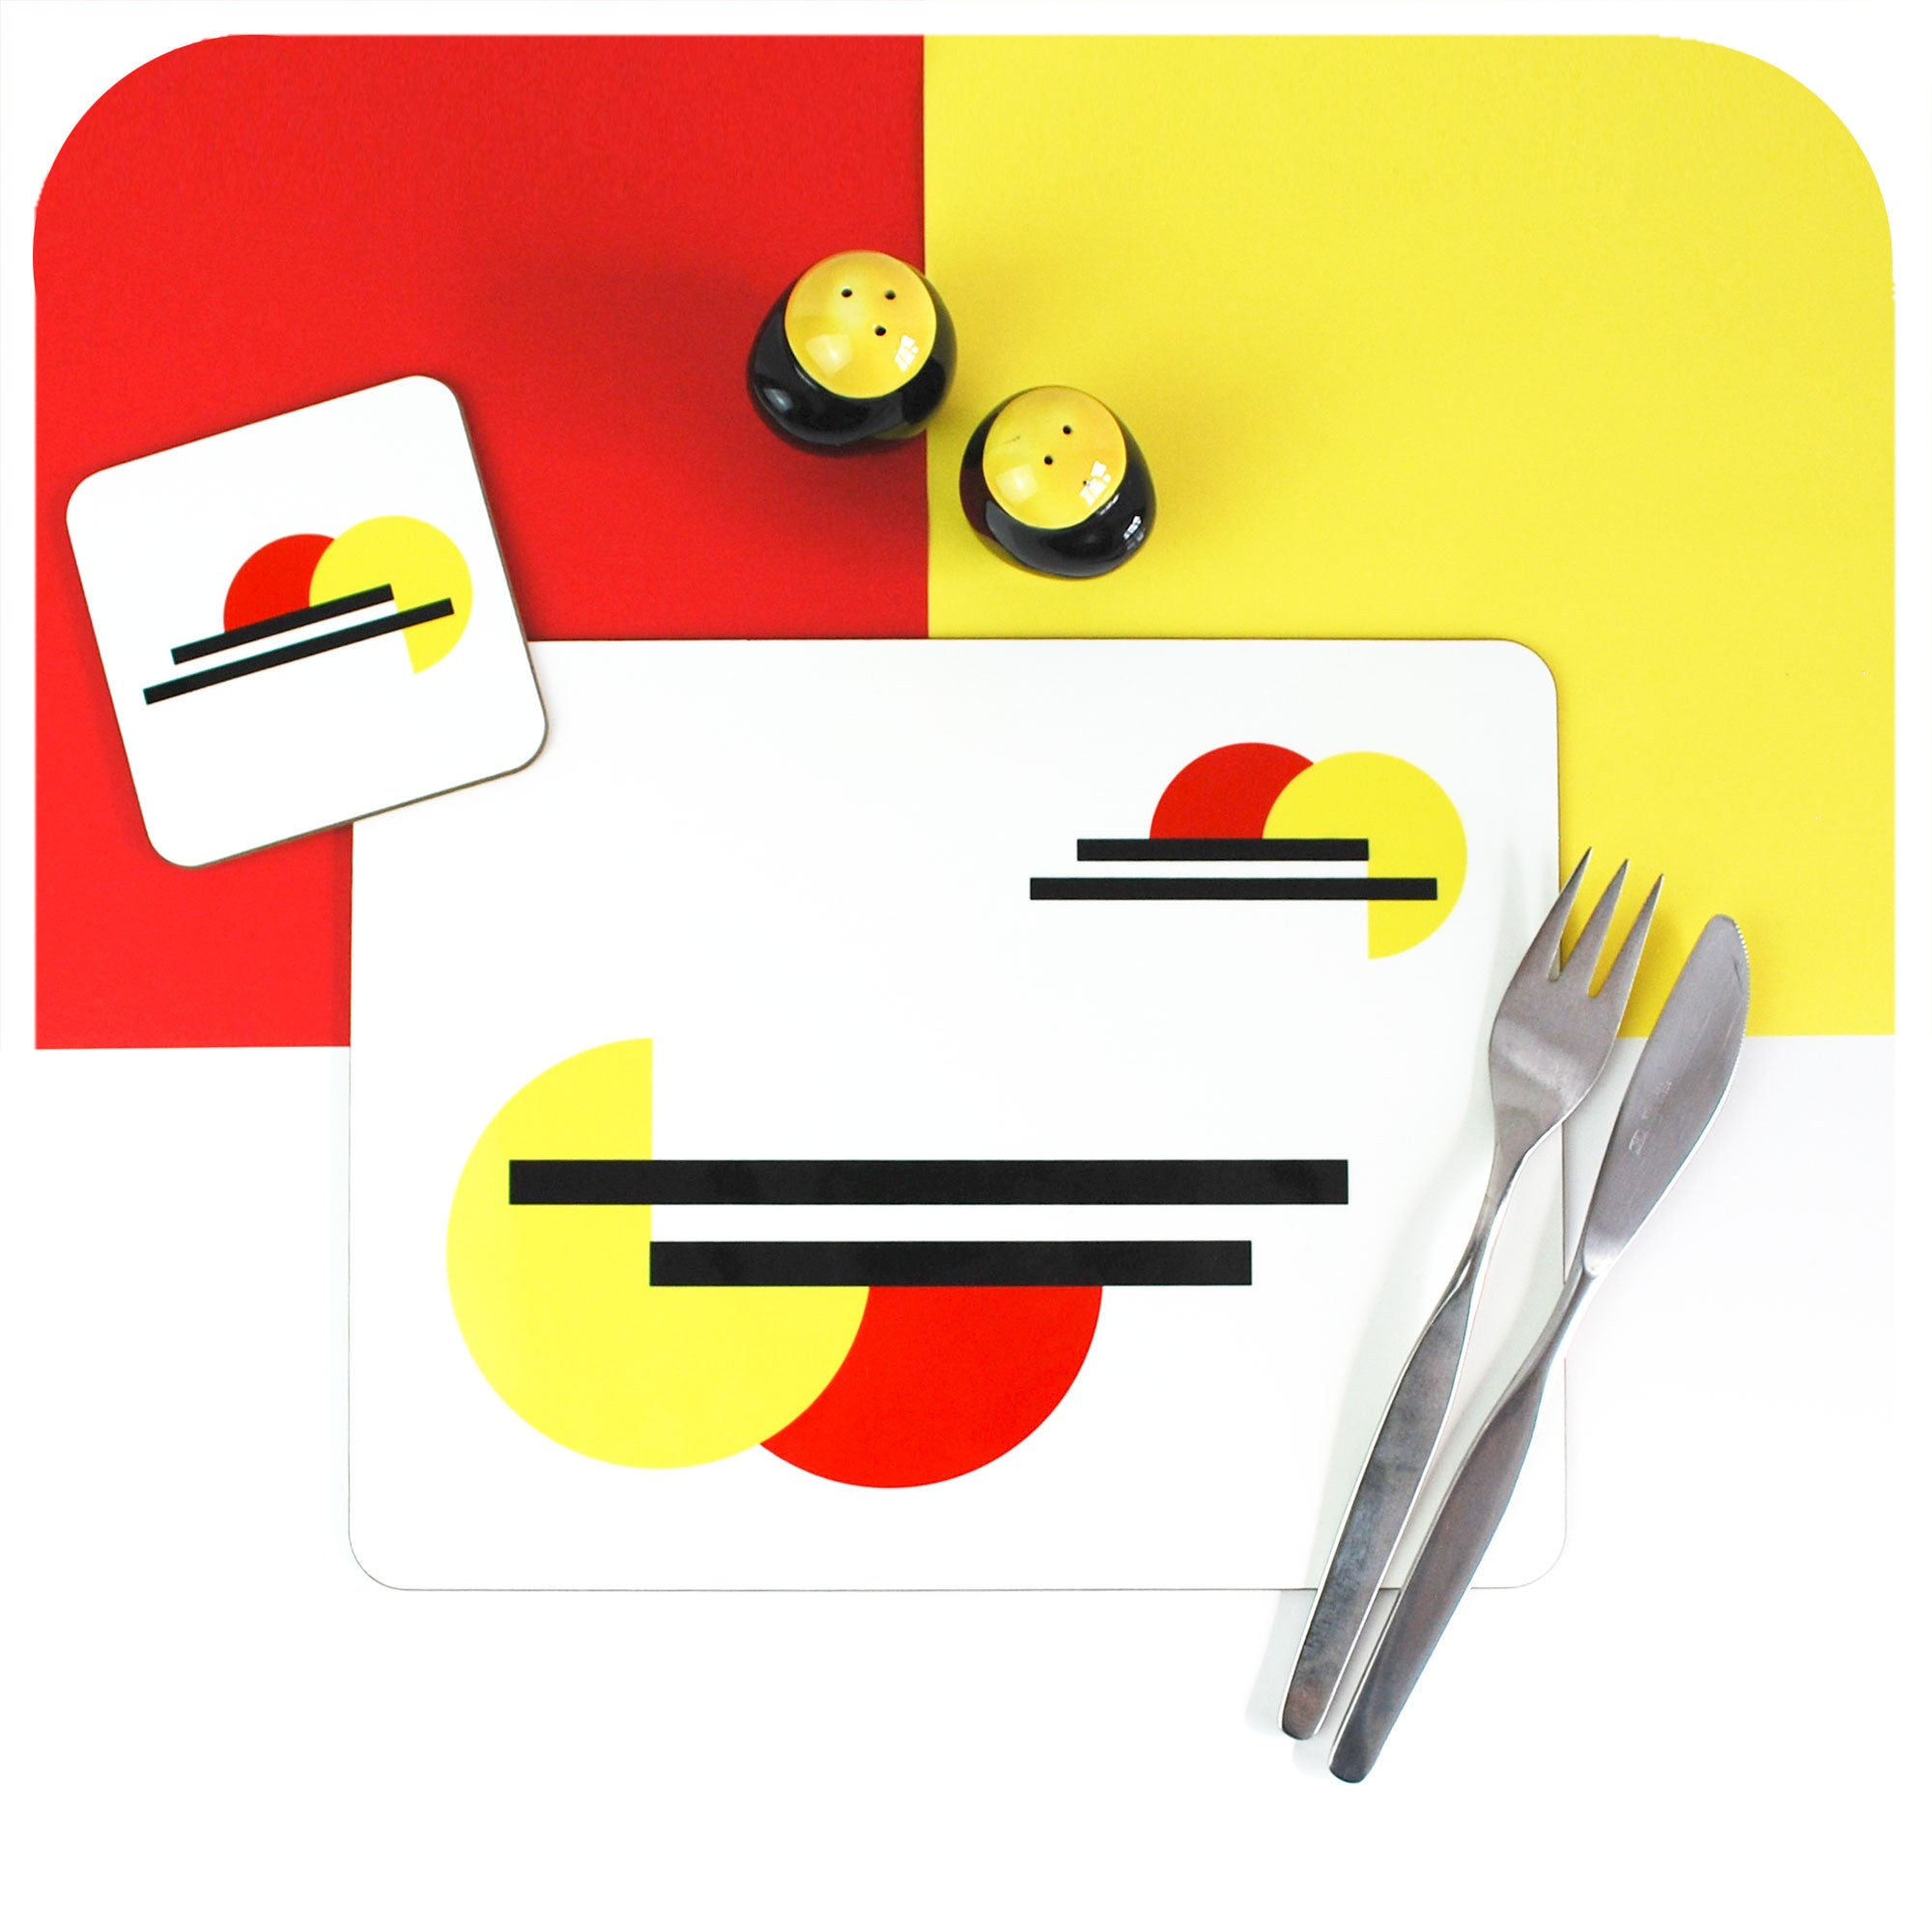 Bauhaus inspired, modernist style Placemat & Coaster set | The Inkabilly Emporium